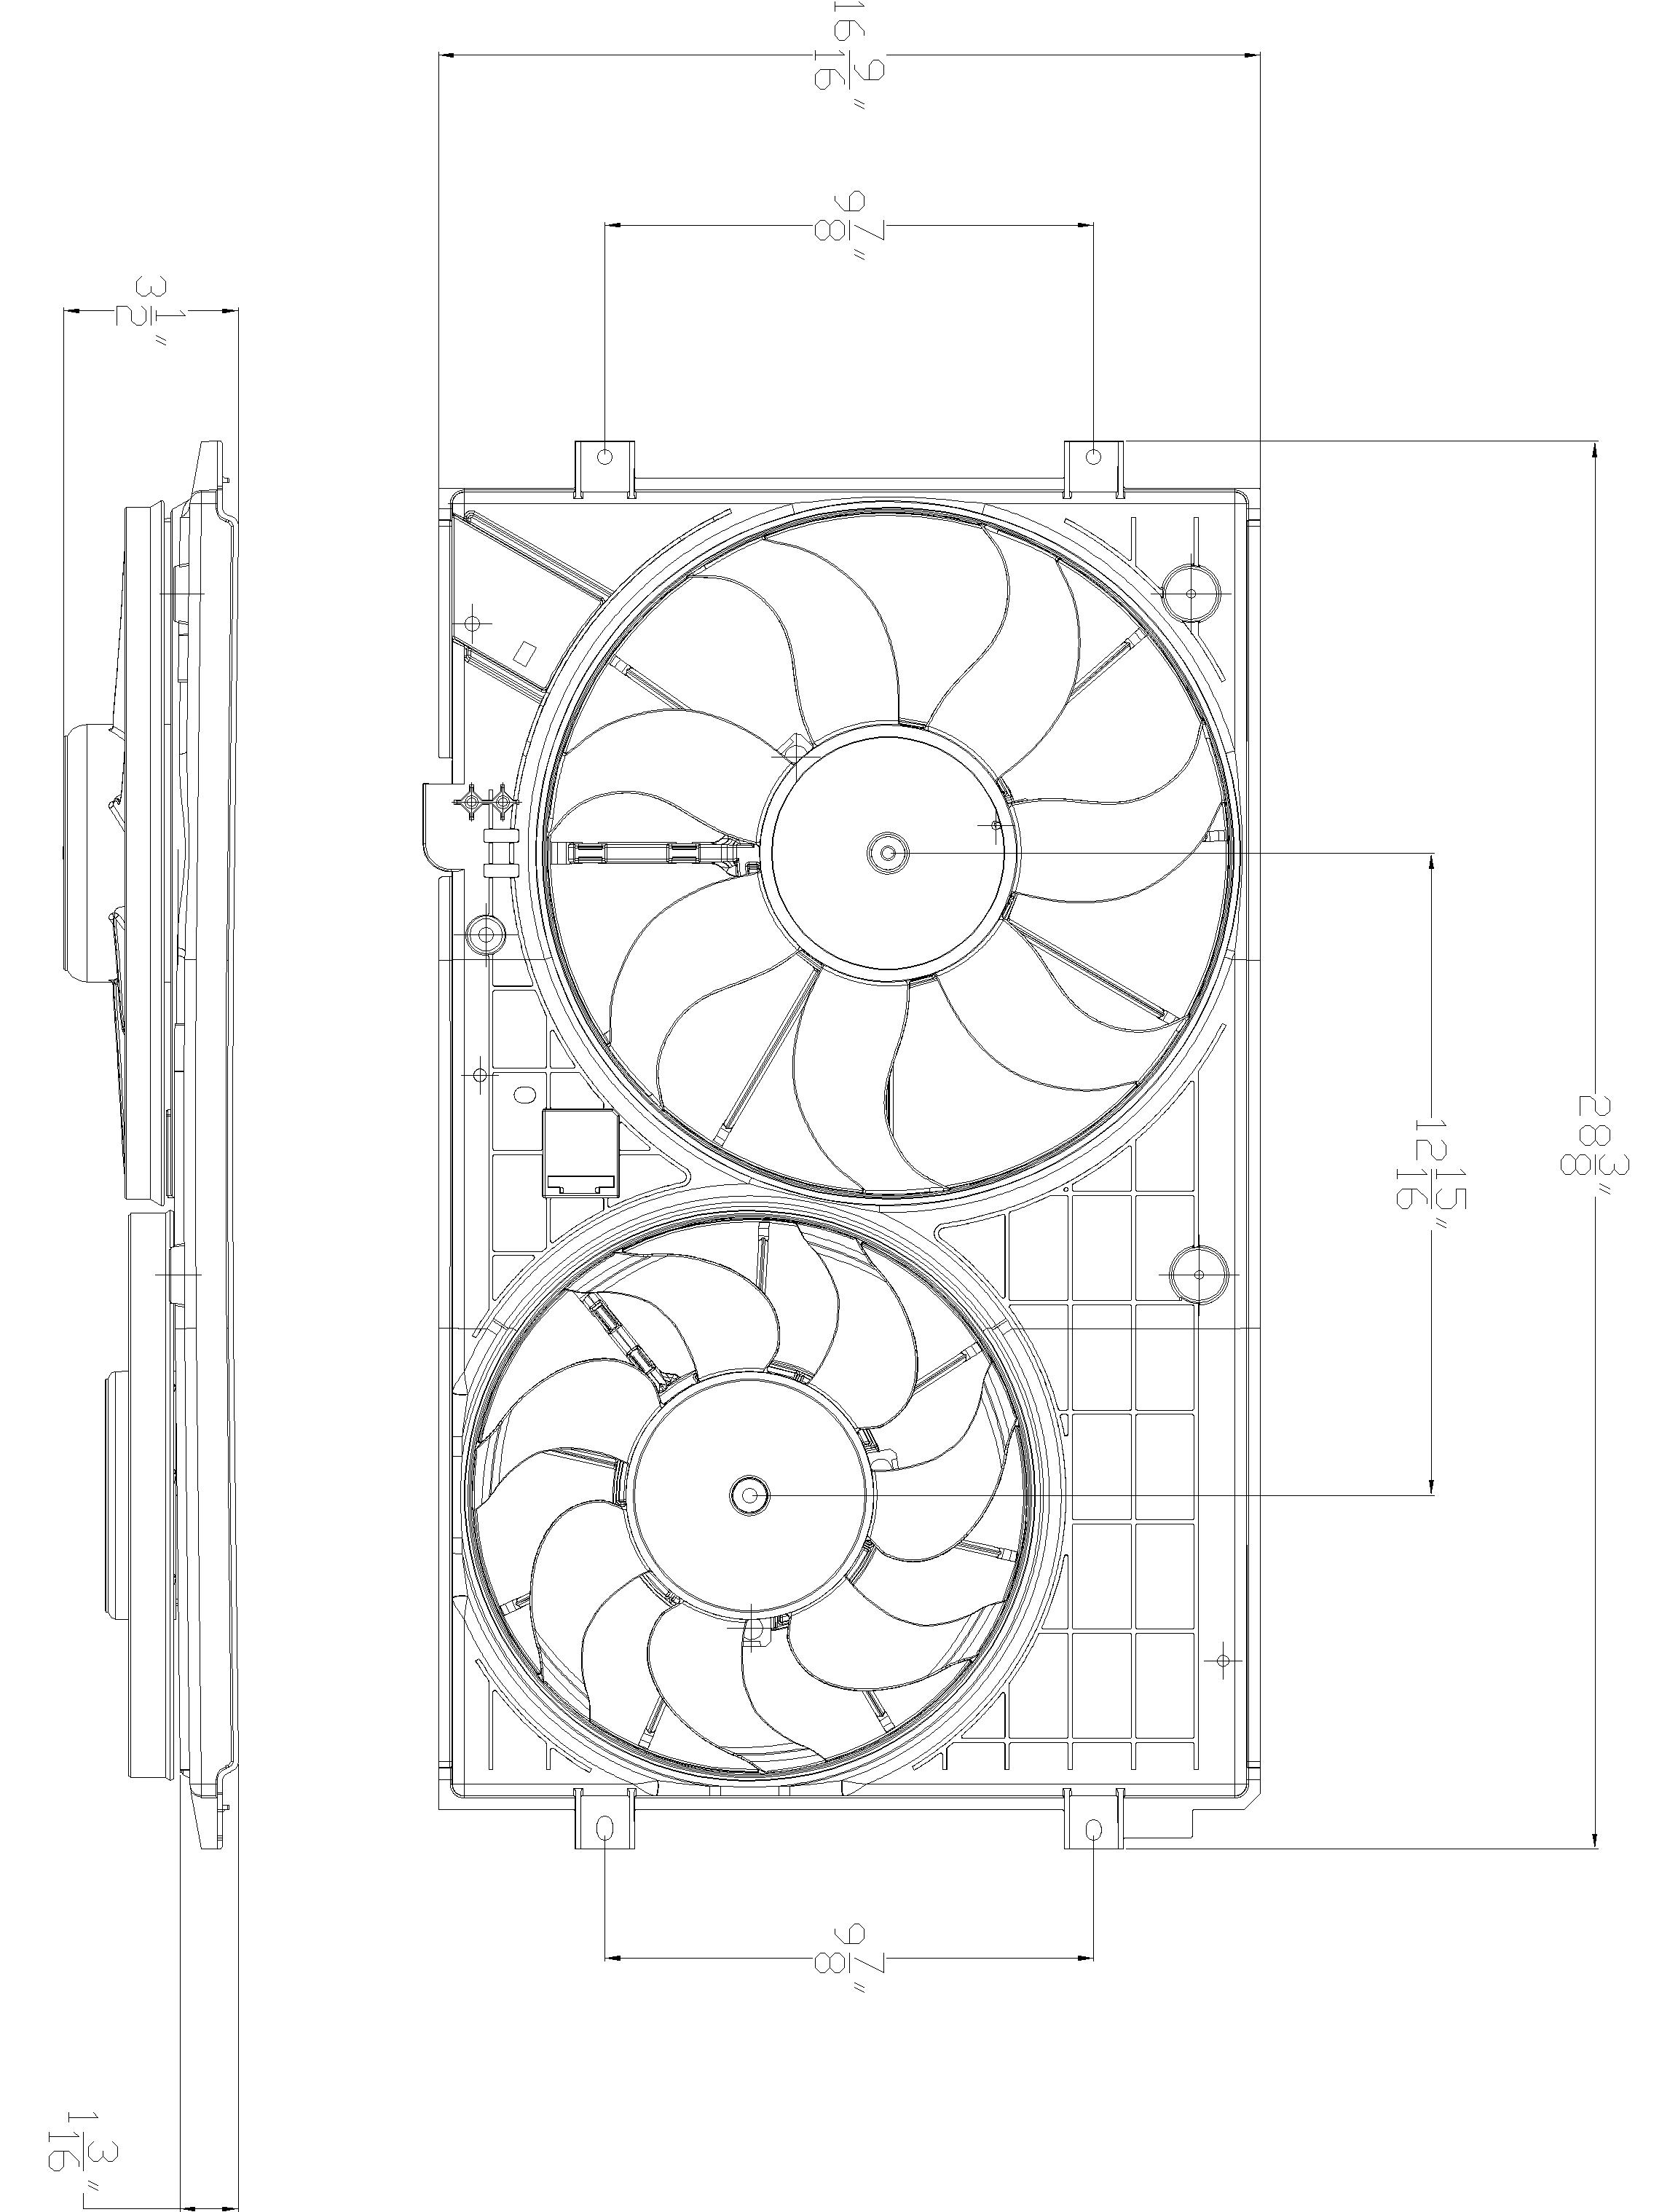 TYC # 621490 Radiator Fan Fits OE # 1K0 959 455 ET